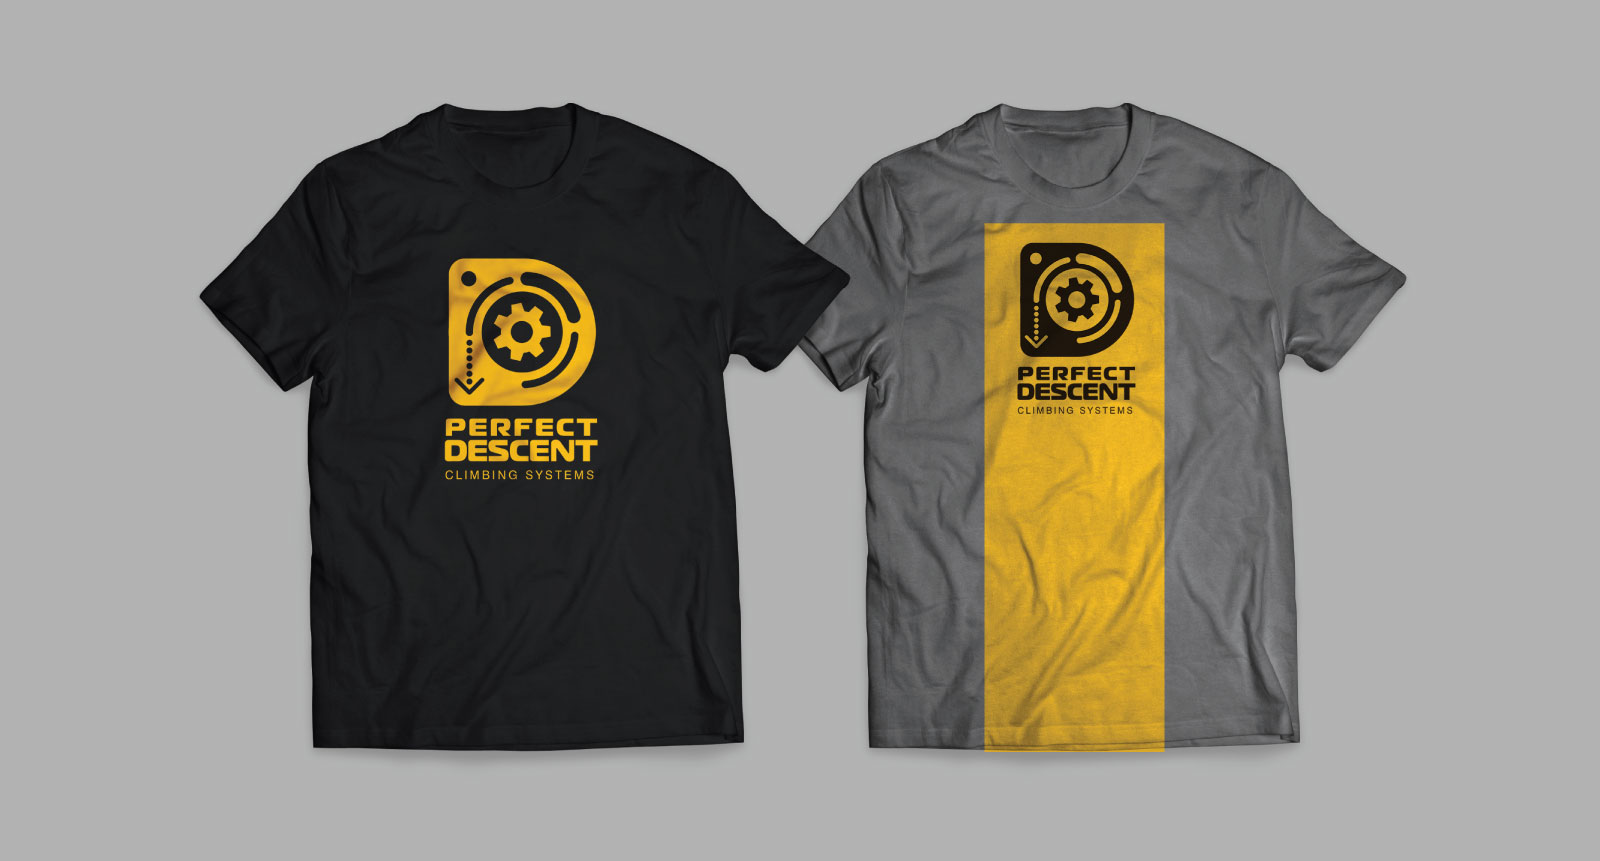 Perfect Descent t-shirts with yellow D gear logo on black shirt and black logo on a gray shirt